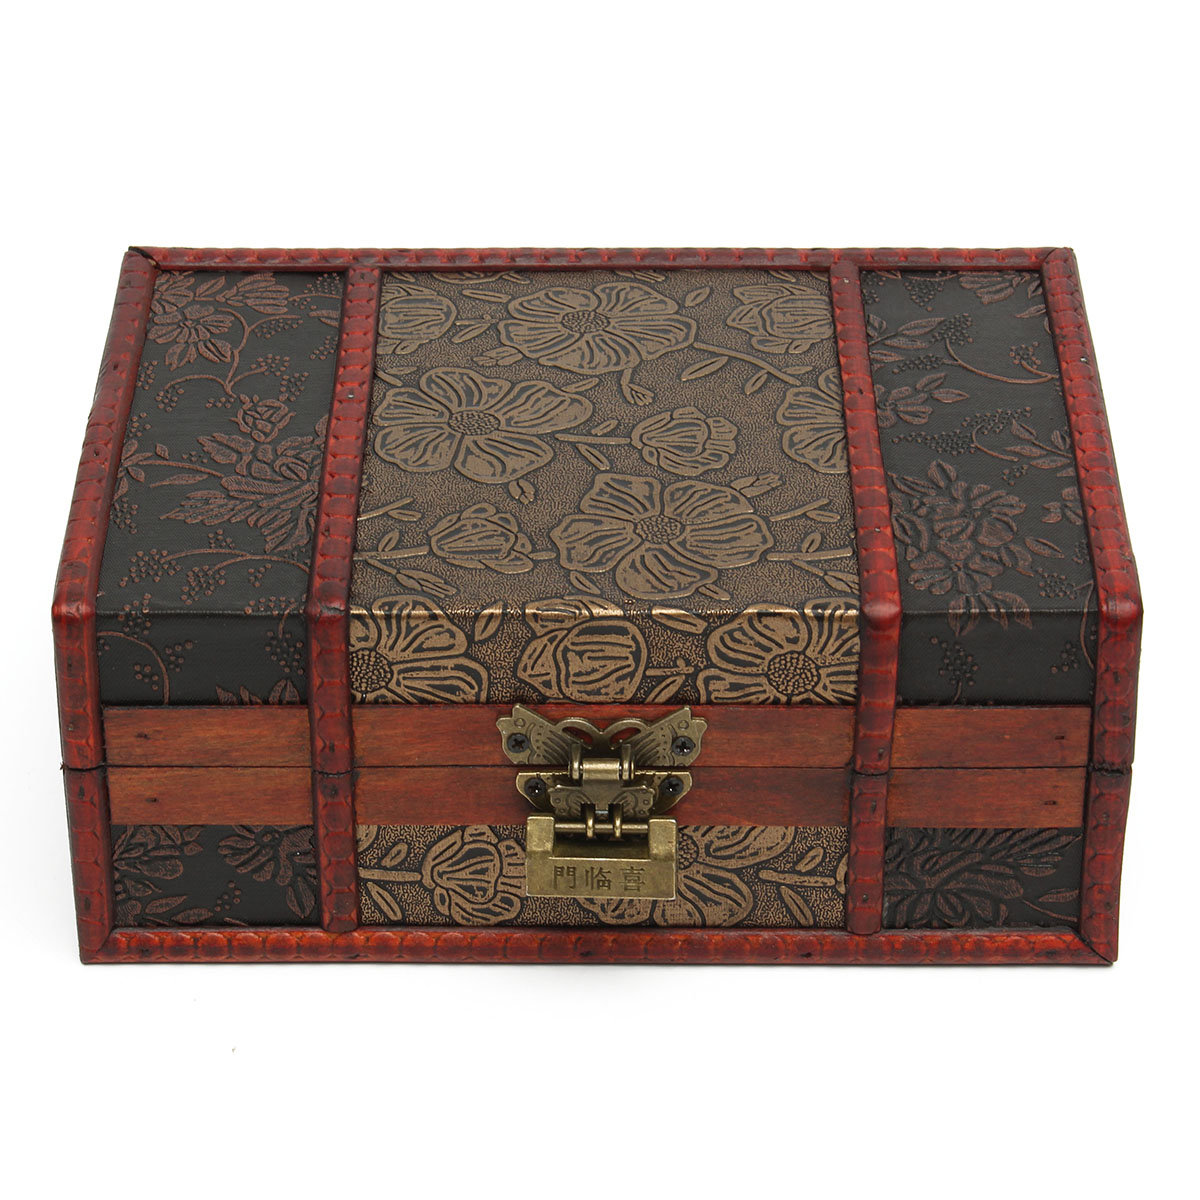 Vintage Red Box Retro Flower Carved Wooden Jewelry Gift Collect Box Case Holder